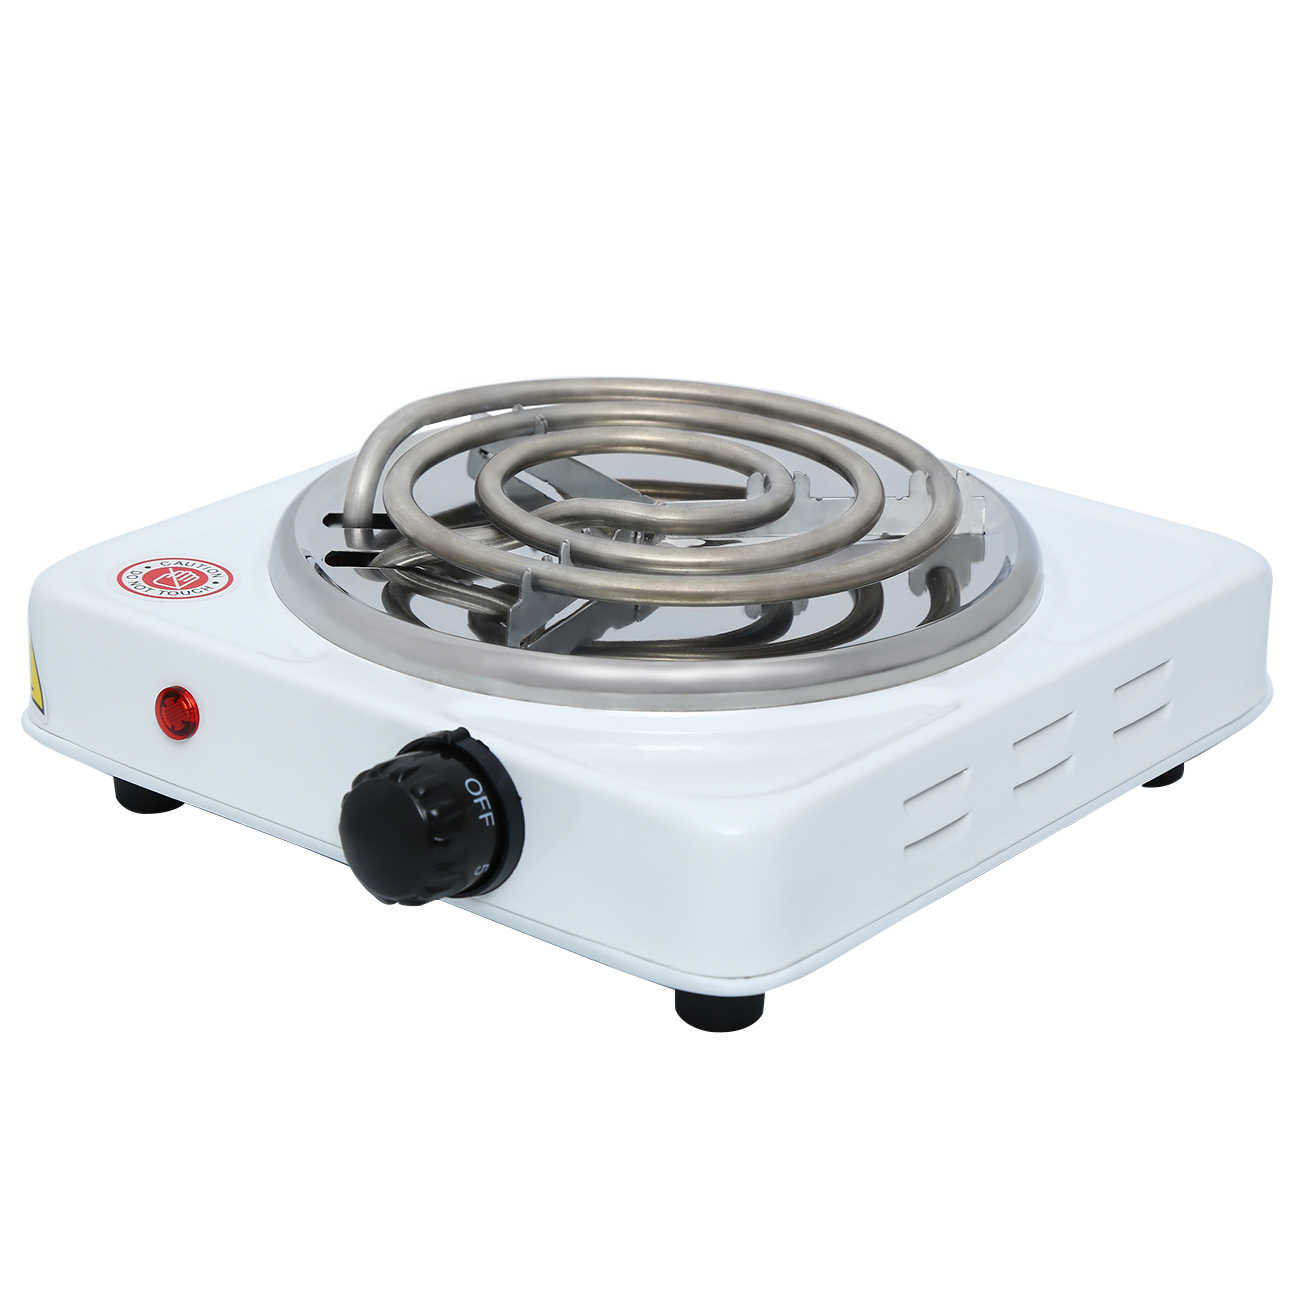 Portable Electric Iron Burner Single Stove Mini Hotplate Home Kitchen Coffee Heater Cooker Dorm Rv Travel Cook 110v Aliexpress